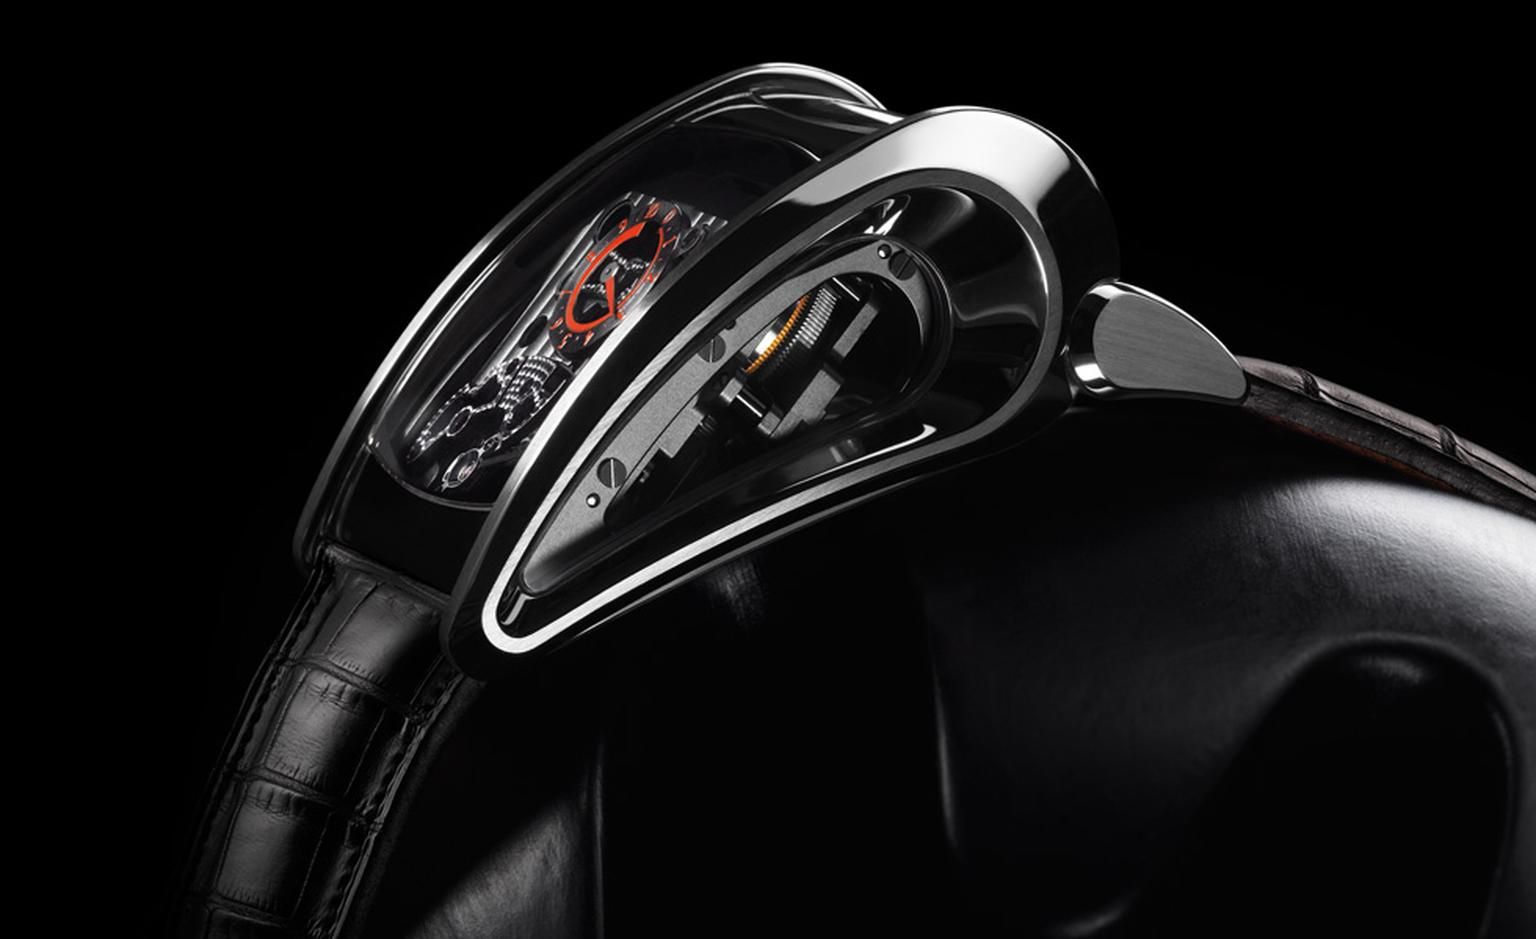 Profile of the Parmigiani Fleurier Bugatti Super Sport watch that is all stealth curves and made for speed.